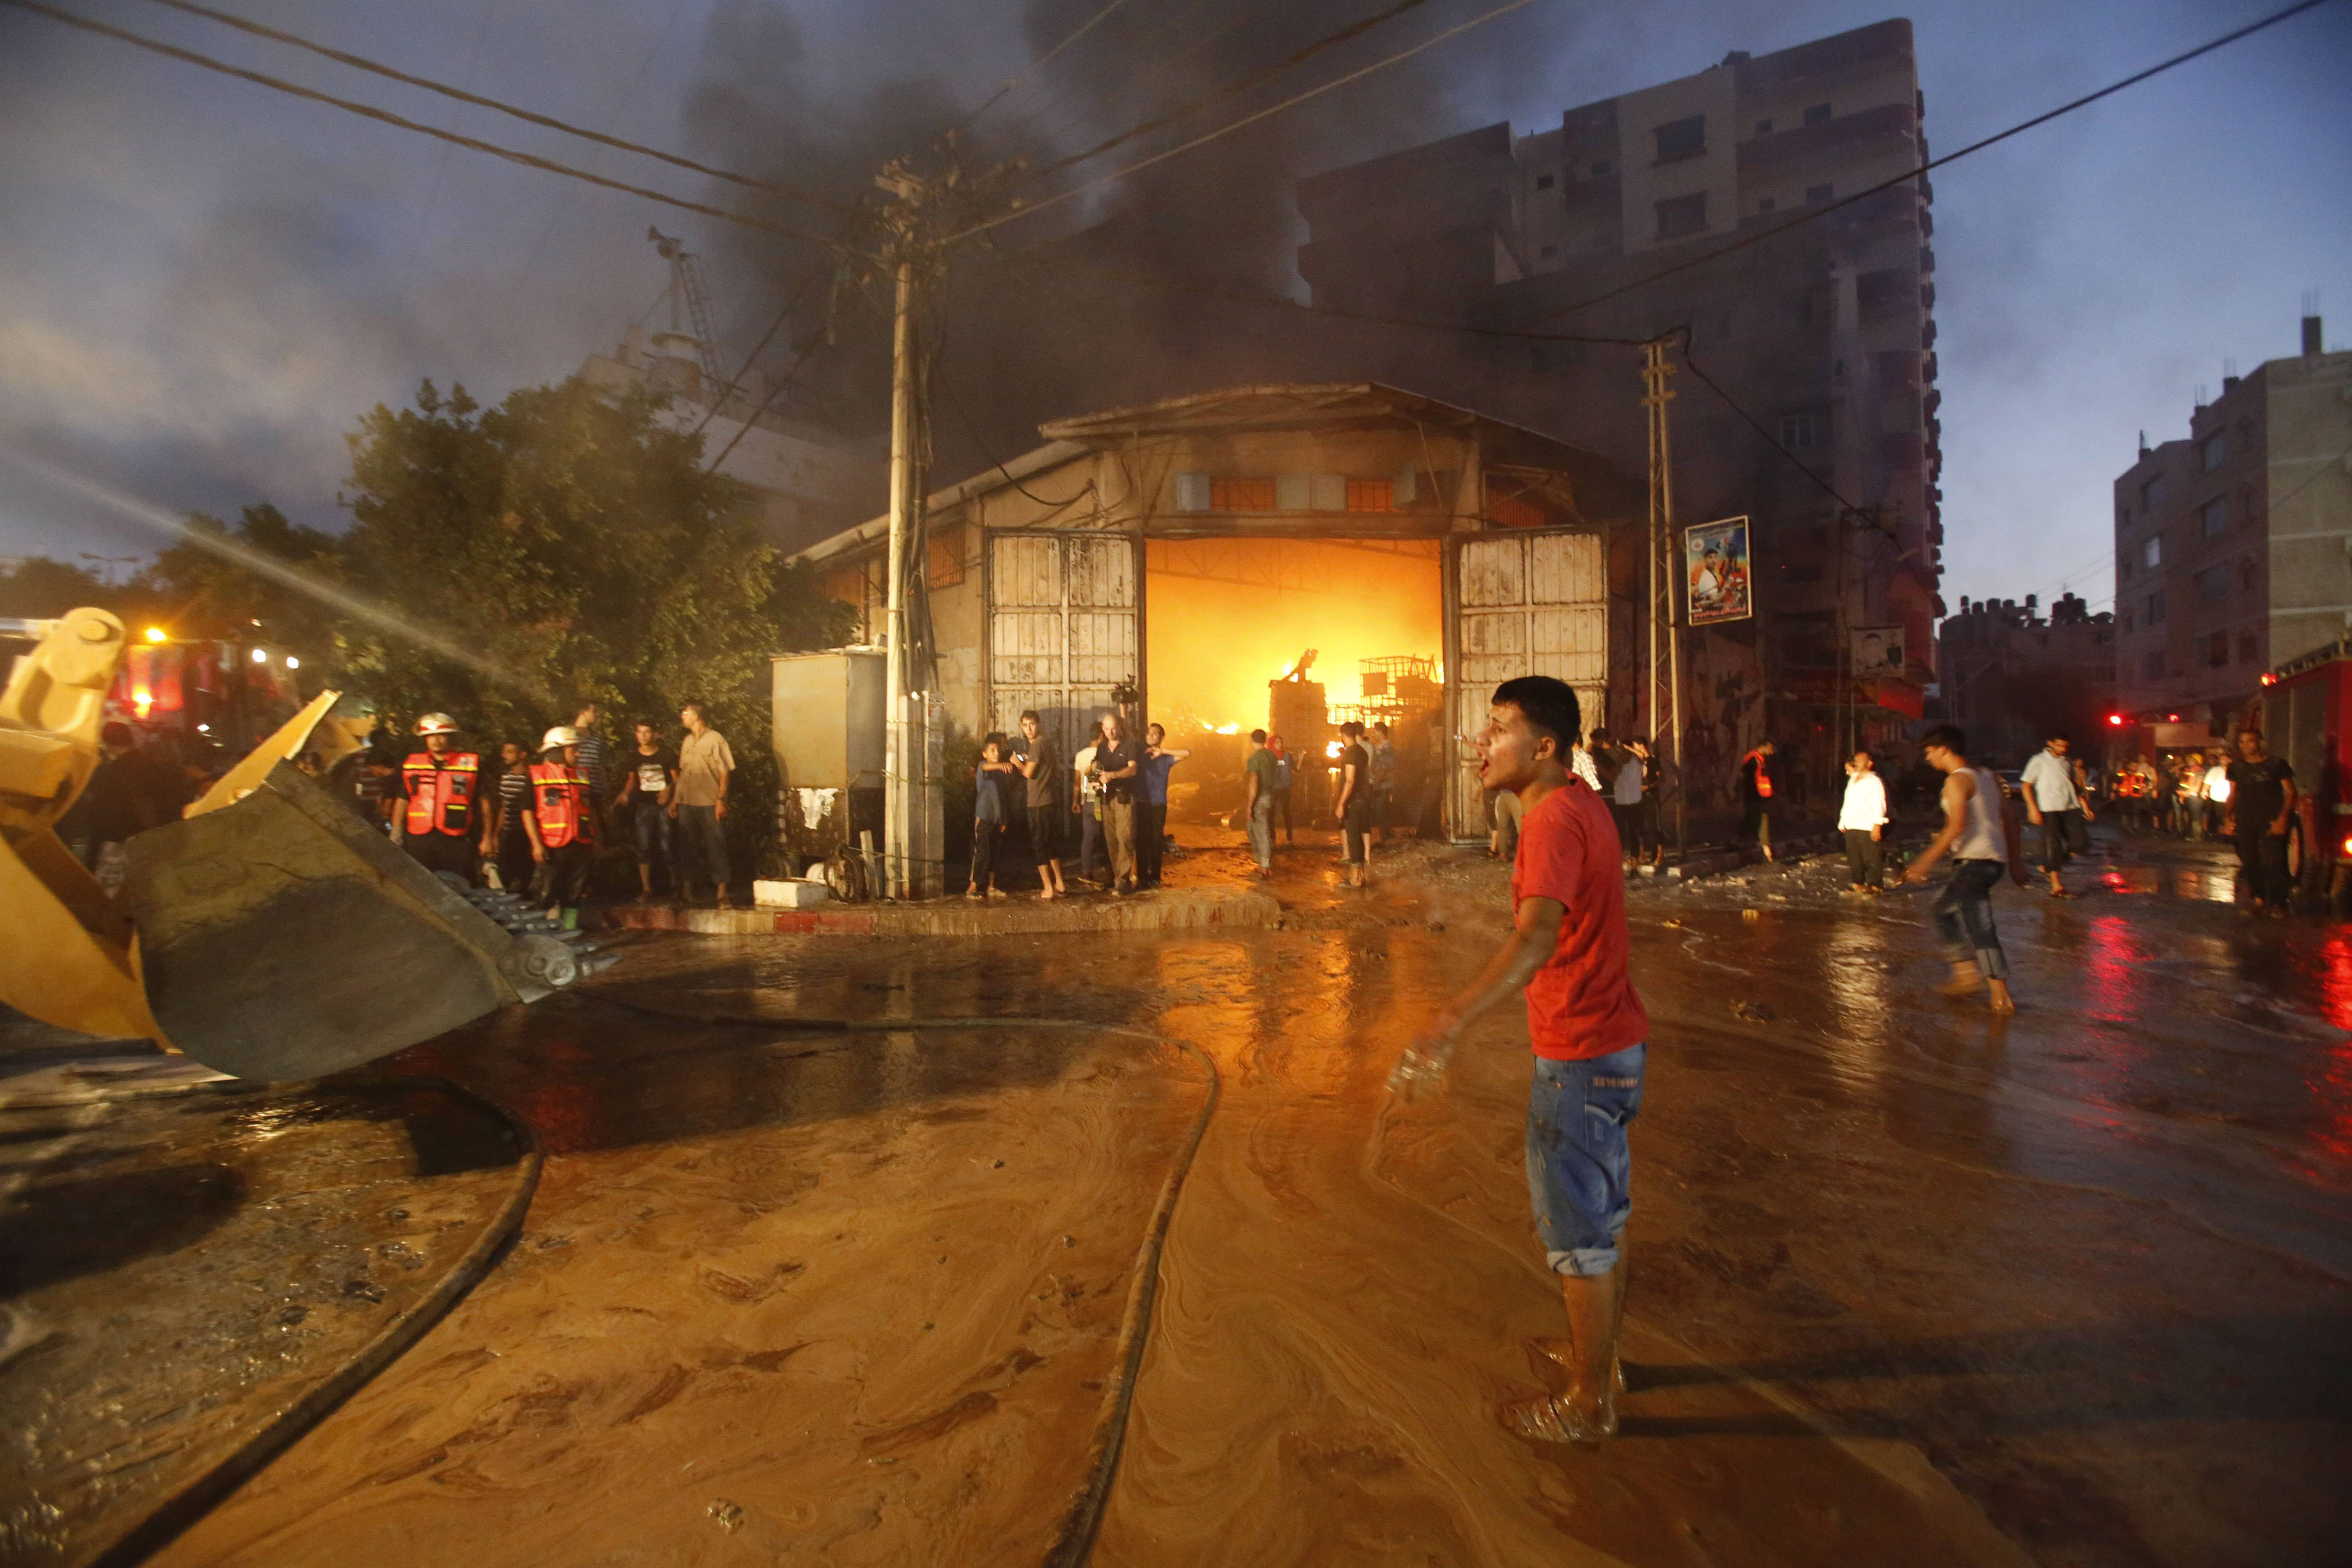 Firefighters try to extinguish fire after a cleaning materials factory was hit by an Israeli airstrike in Gaza City on Sunday.